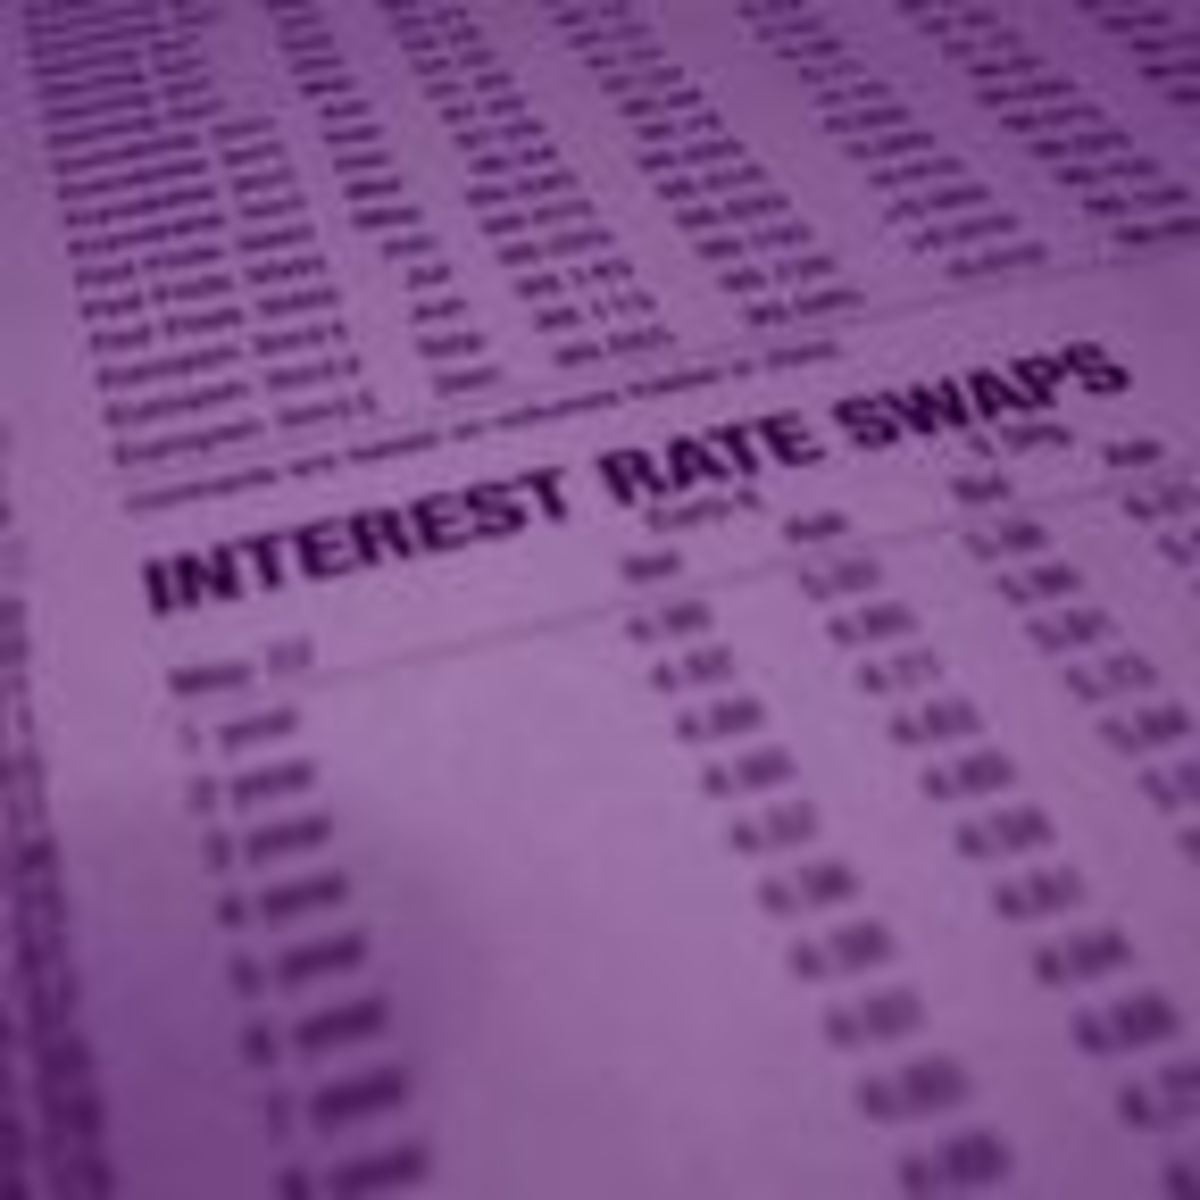 Why Lending With Interest Is Felt to Be Immoral | Psychology Today